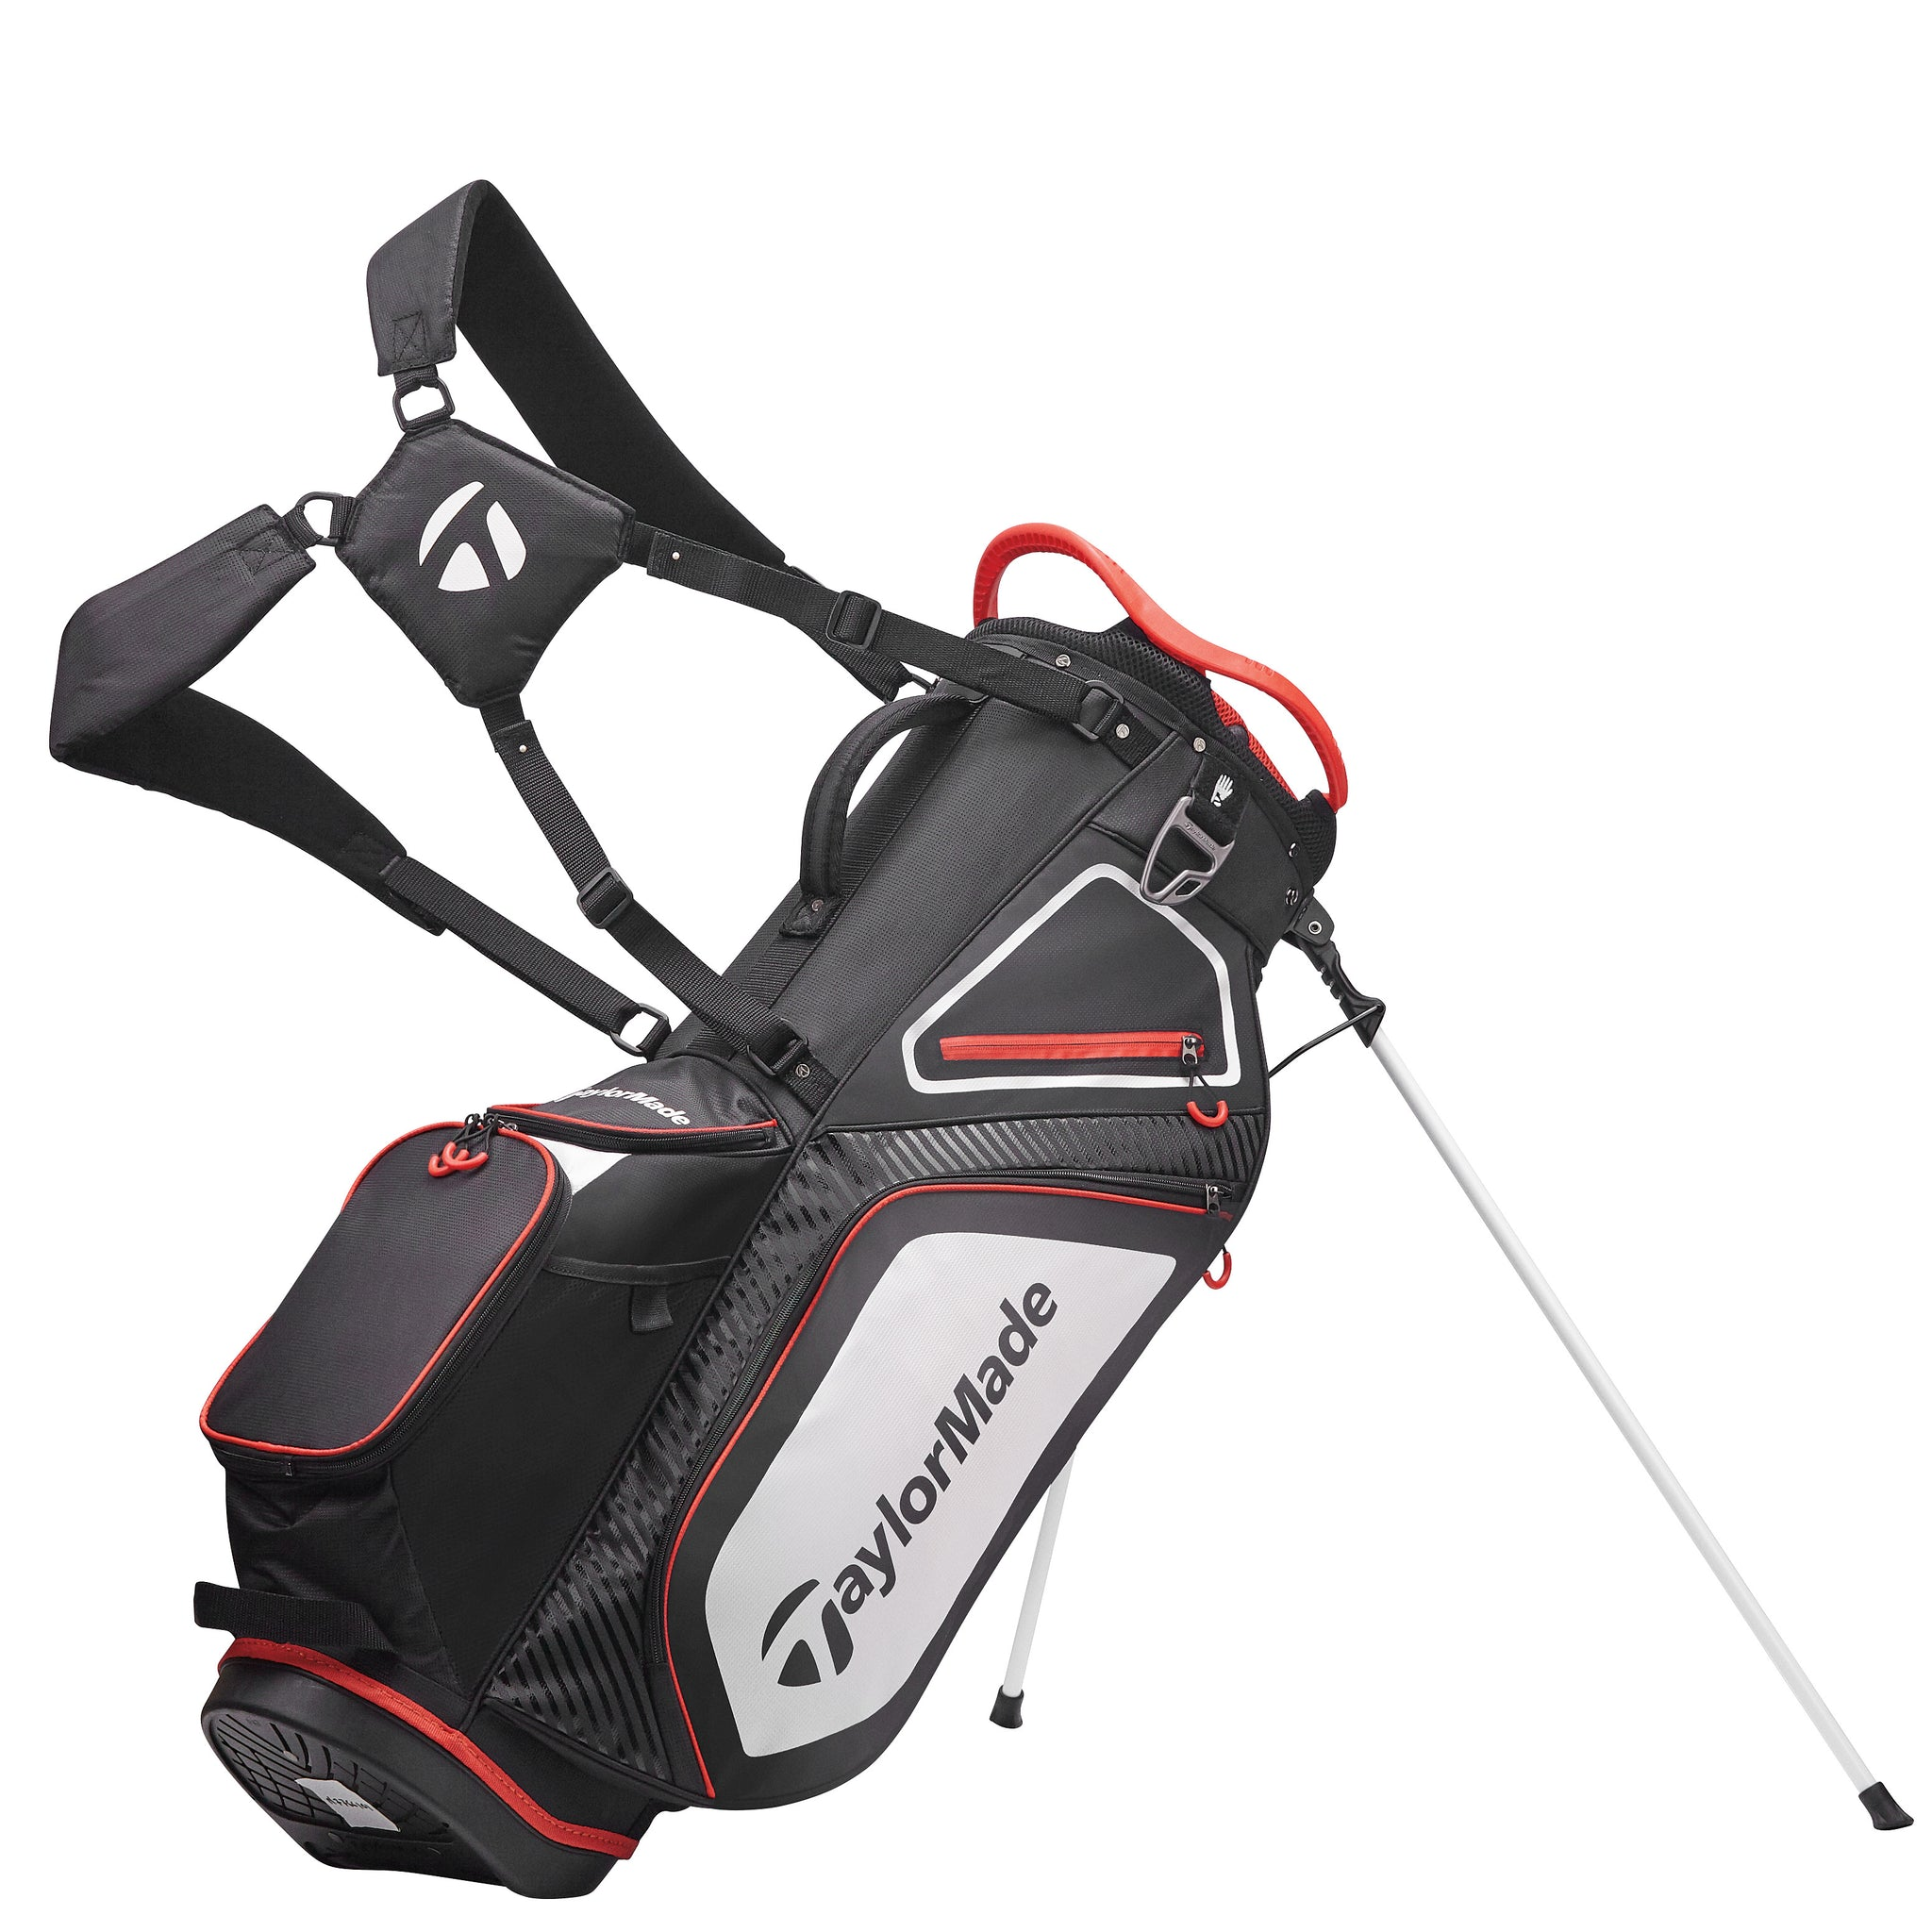 TaylorMade Pro Stand 8.0 Bag